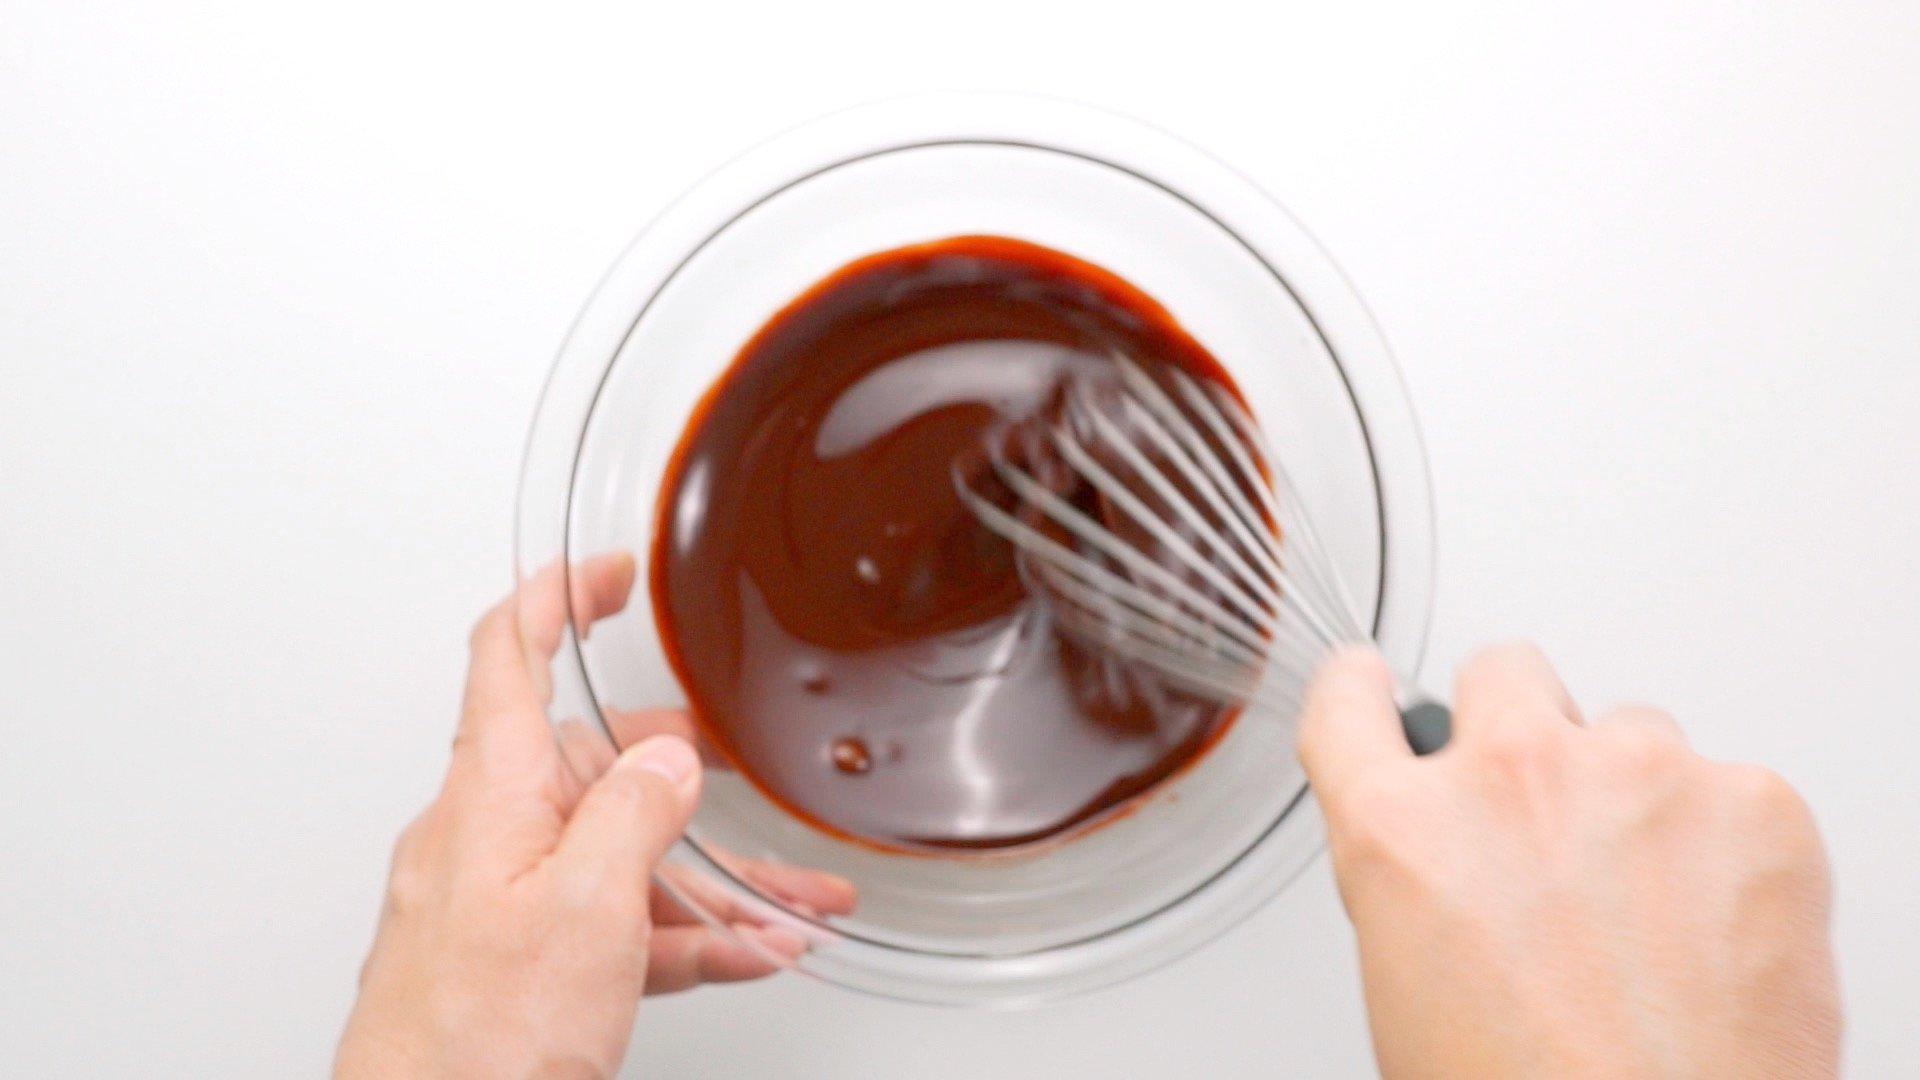 Whisking melted butter and chocolate together in a glass bowl.